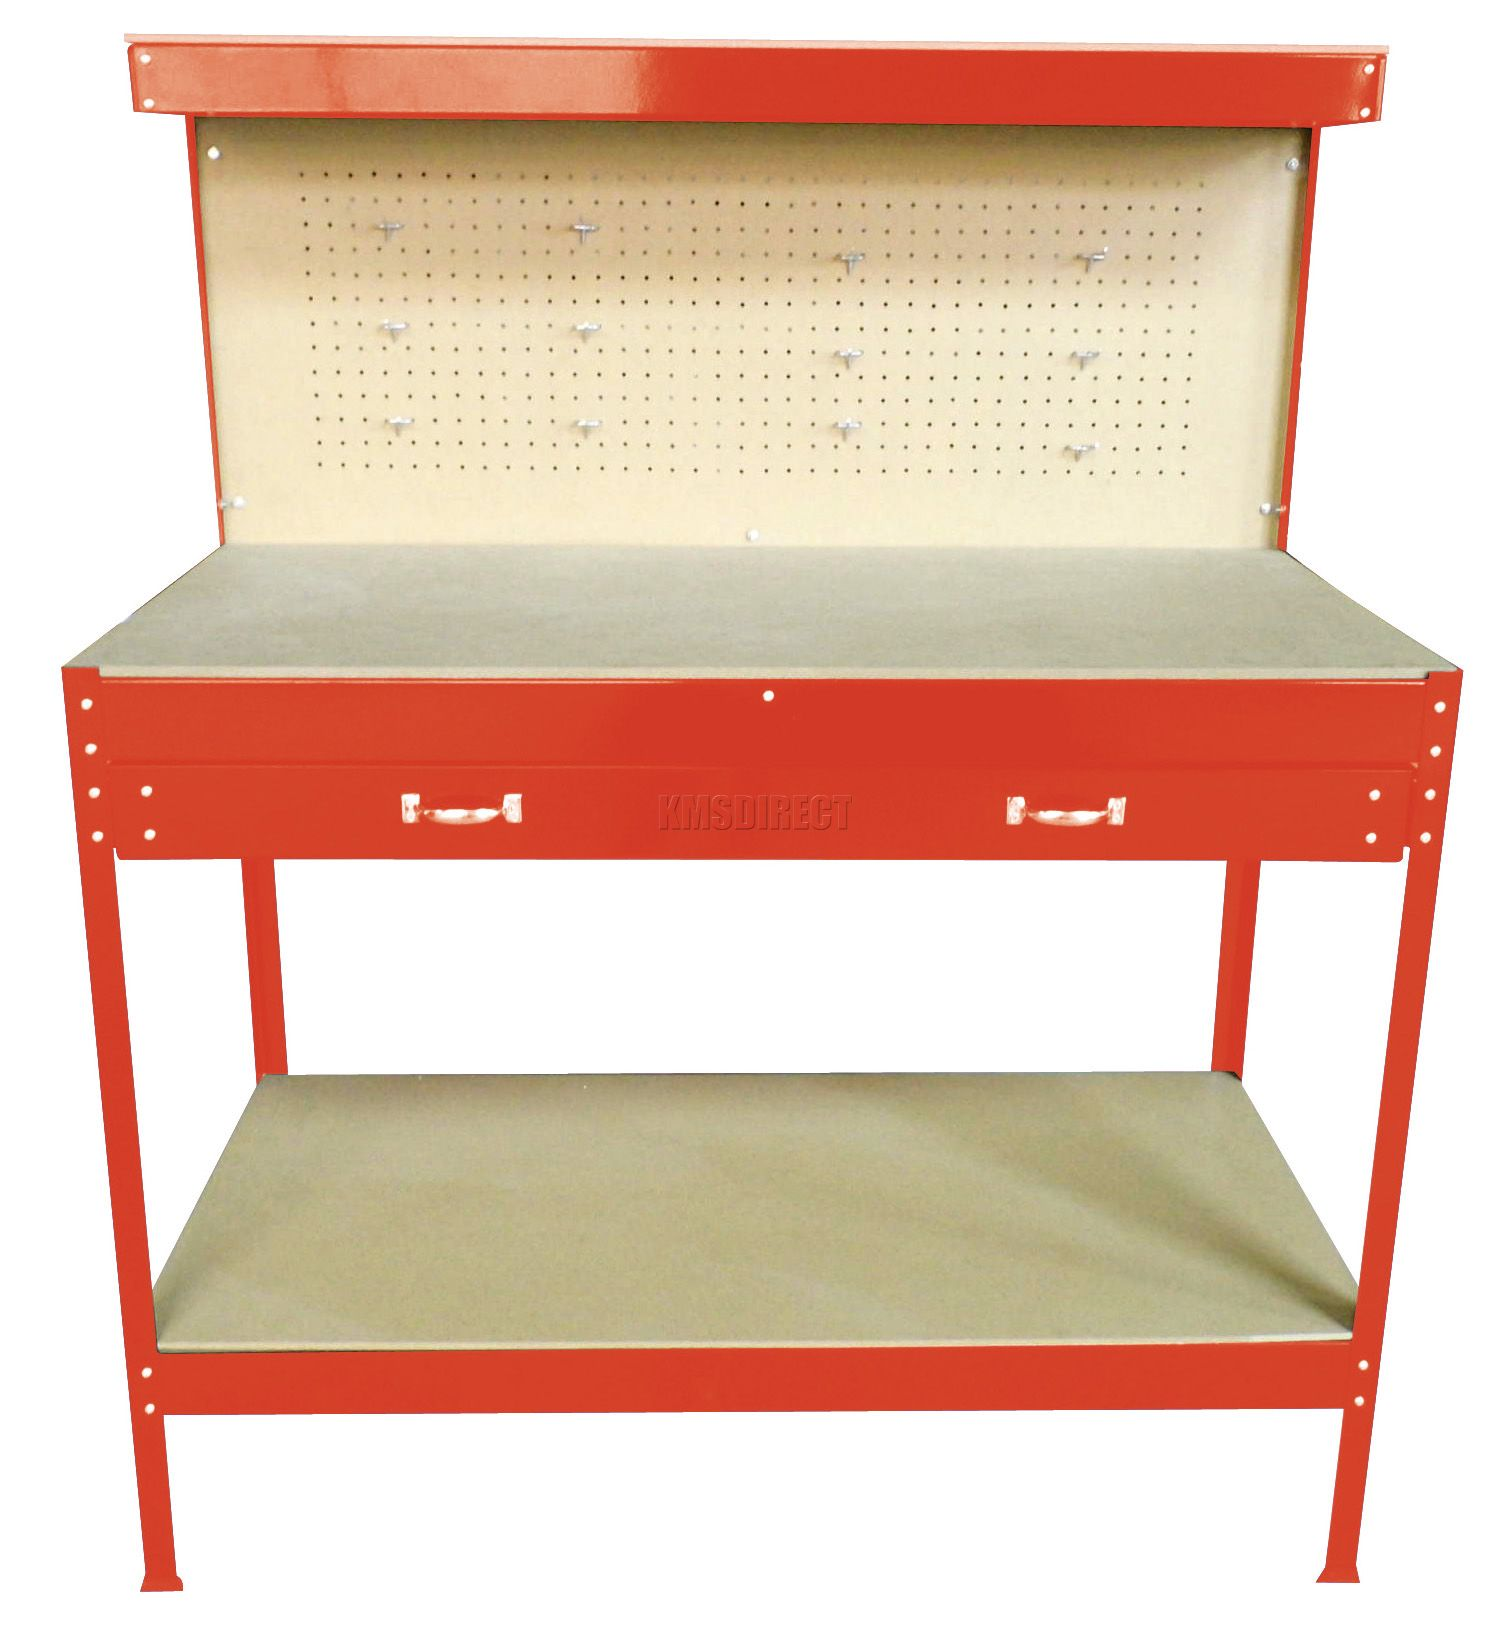 Steel Garage Tool Box Work Bench Storage Pegboard Shelf DIY